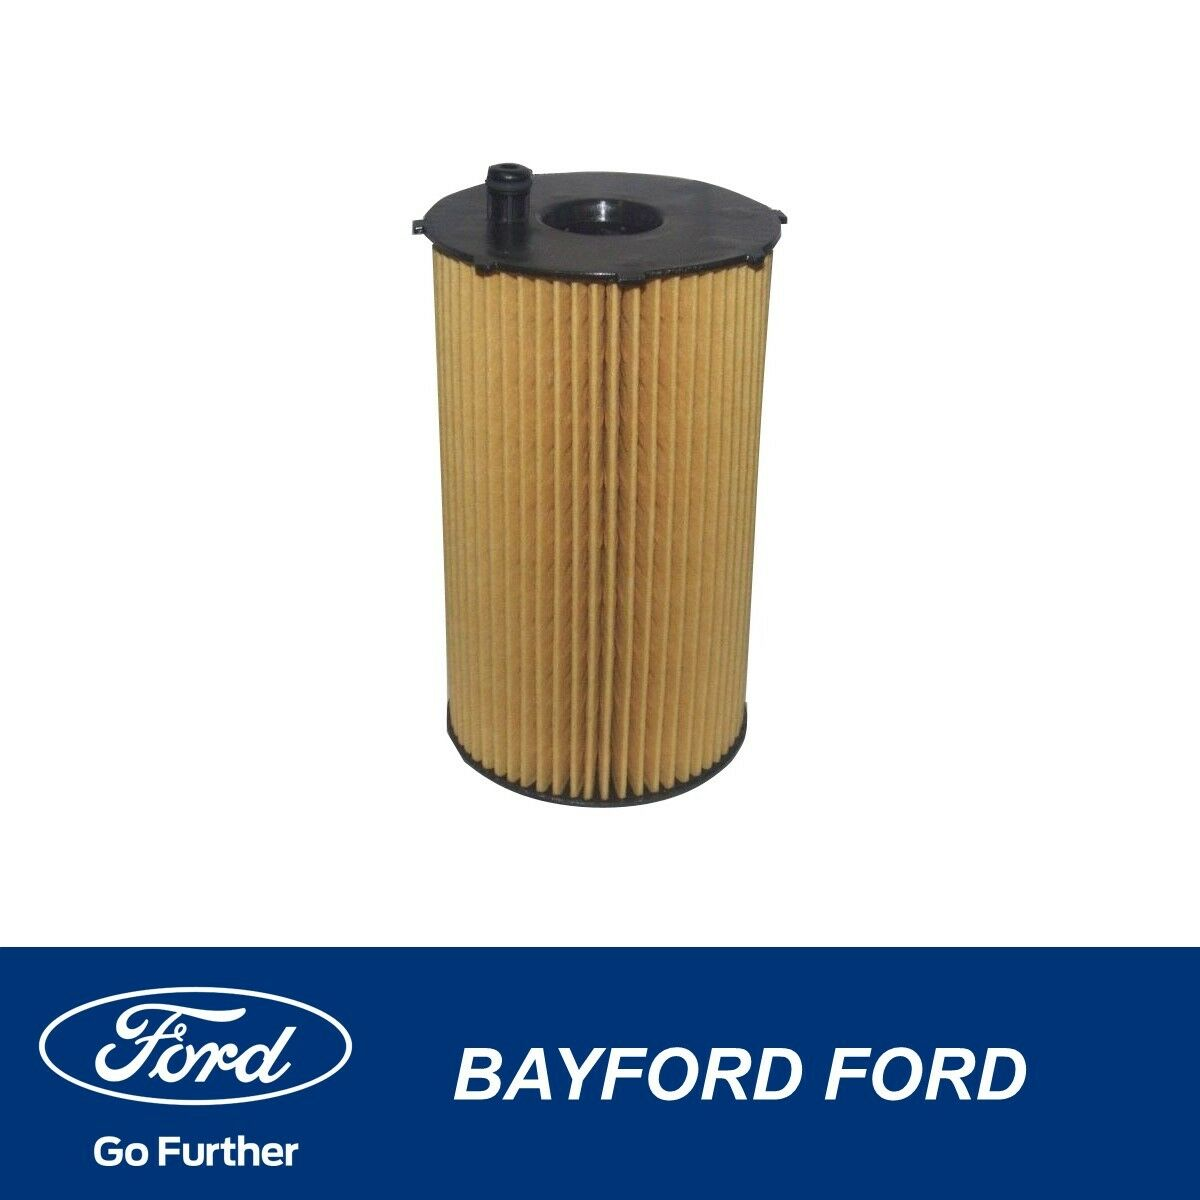 Details about DIESEL OIL FILTER SUITS FORD TERRITORY SZ 2 7V6 DIESEL - NEW  GENUINE FORD PART